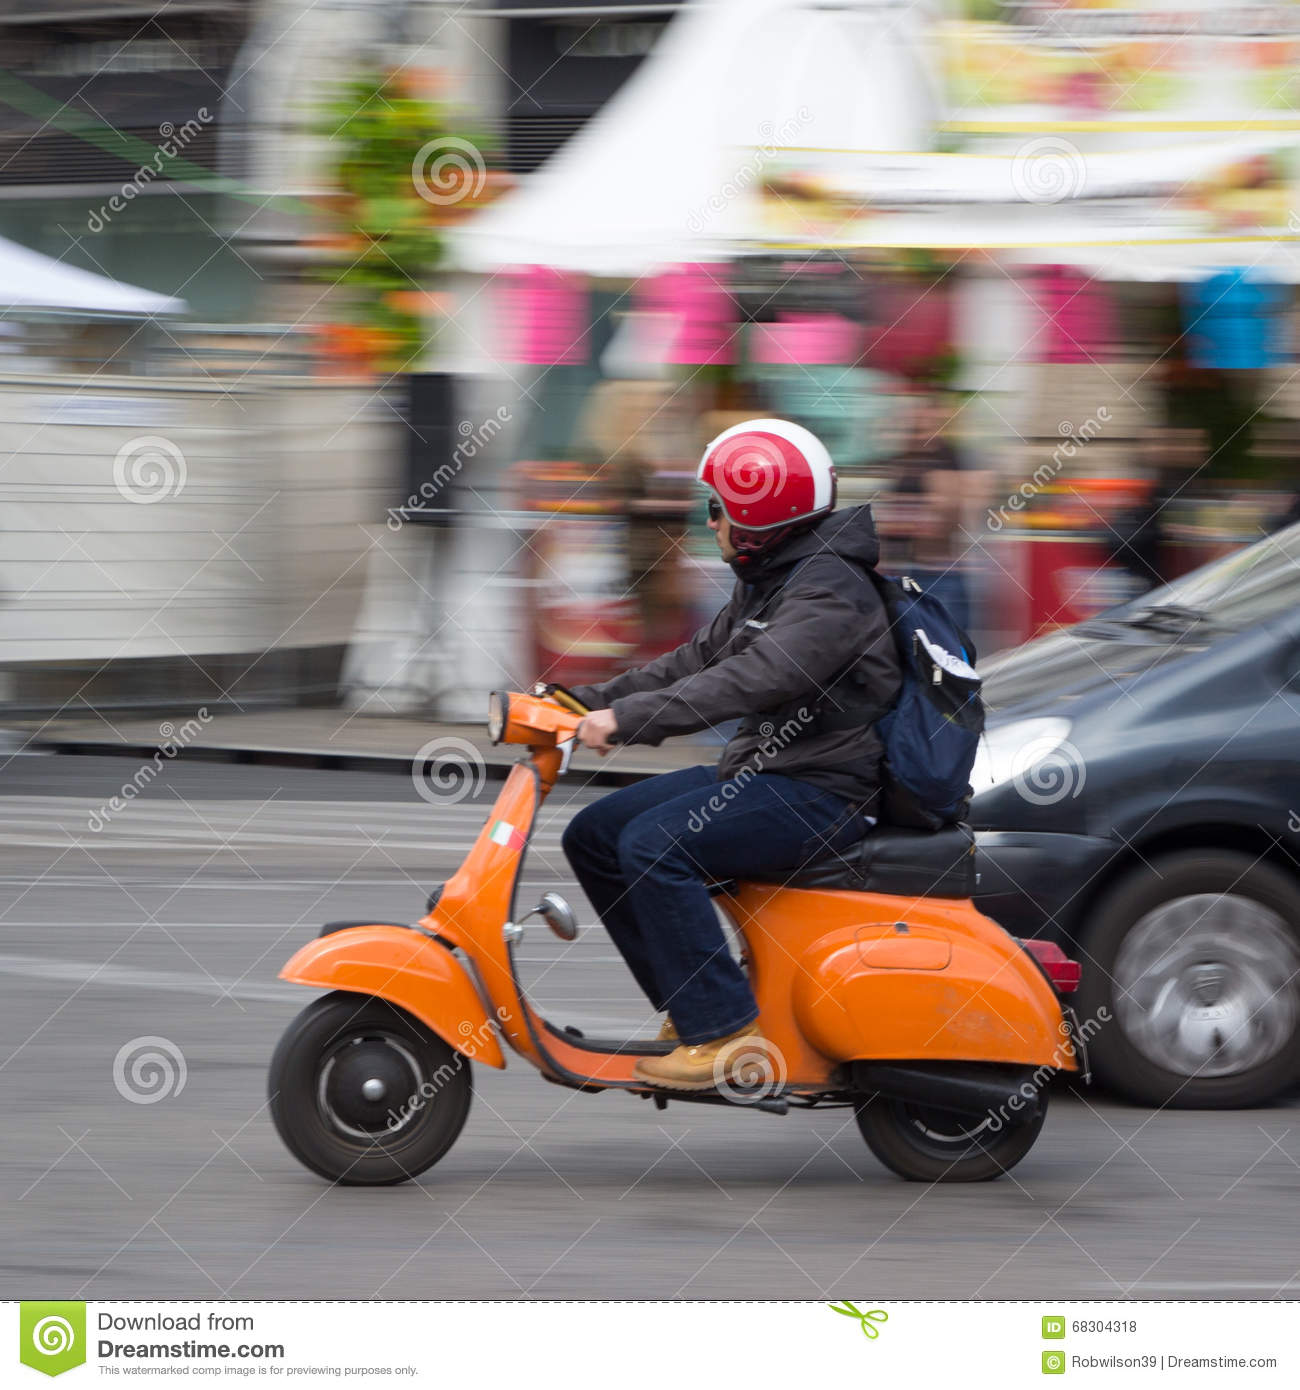 Vespa Scooter In Europe Editorial Stock Photo Image Of Travel 68304318